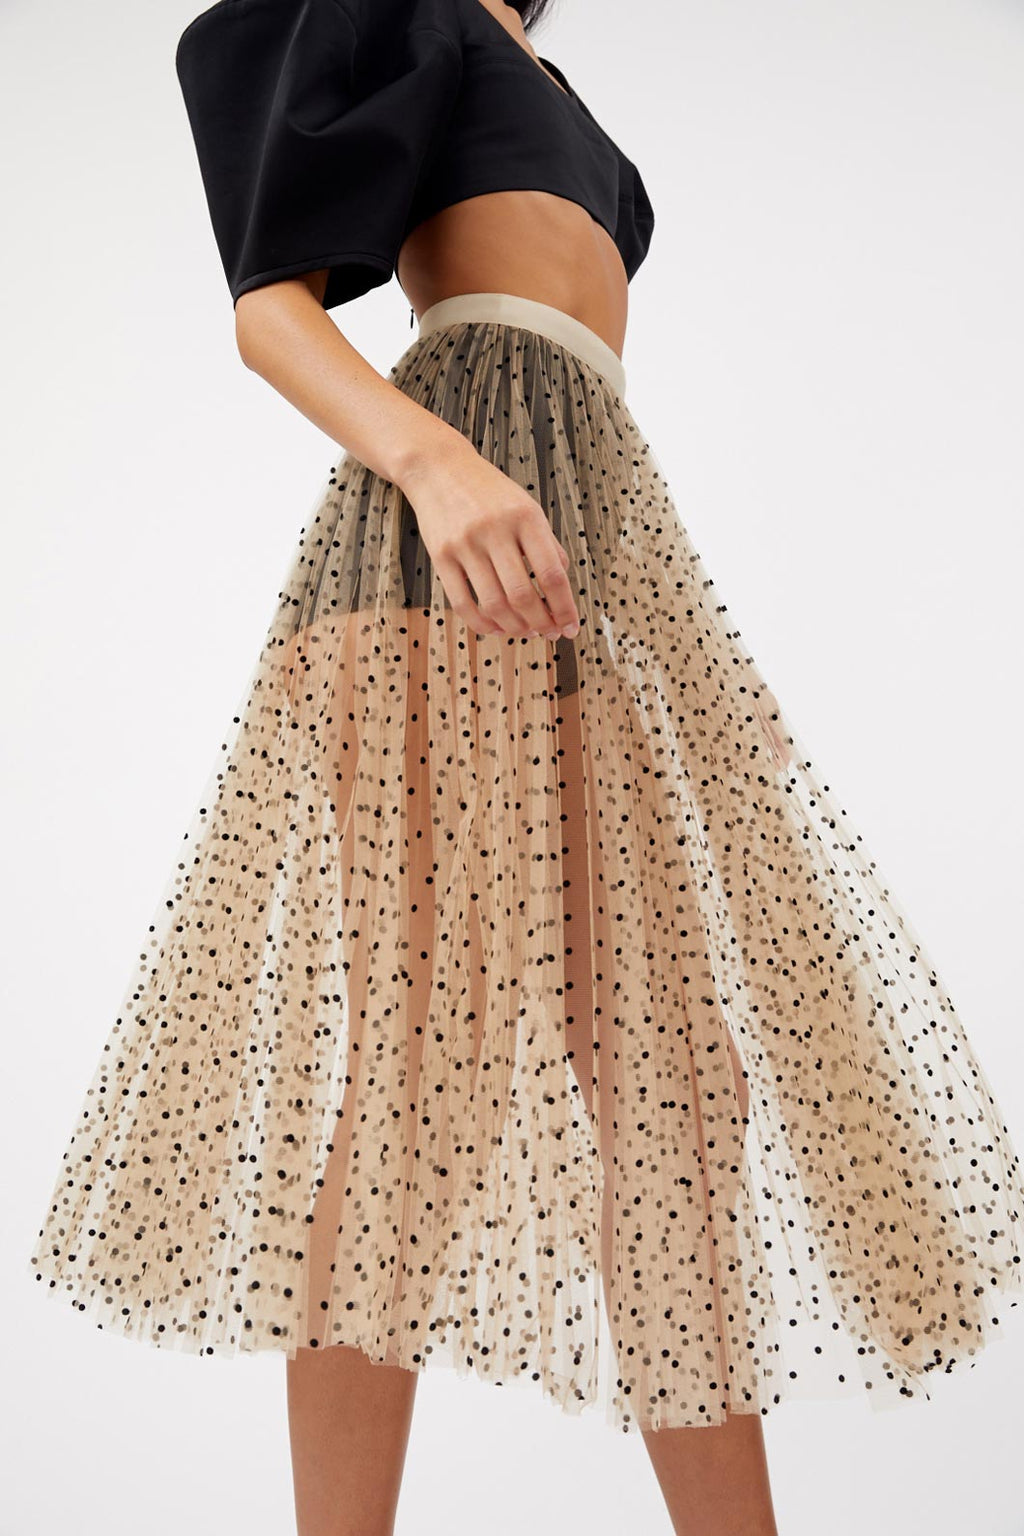 Elisabetta Black Spot Skirt